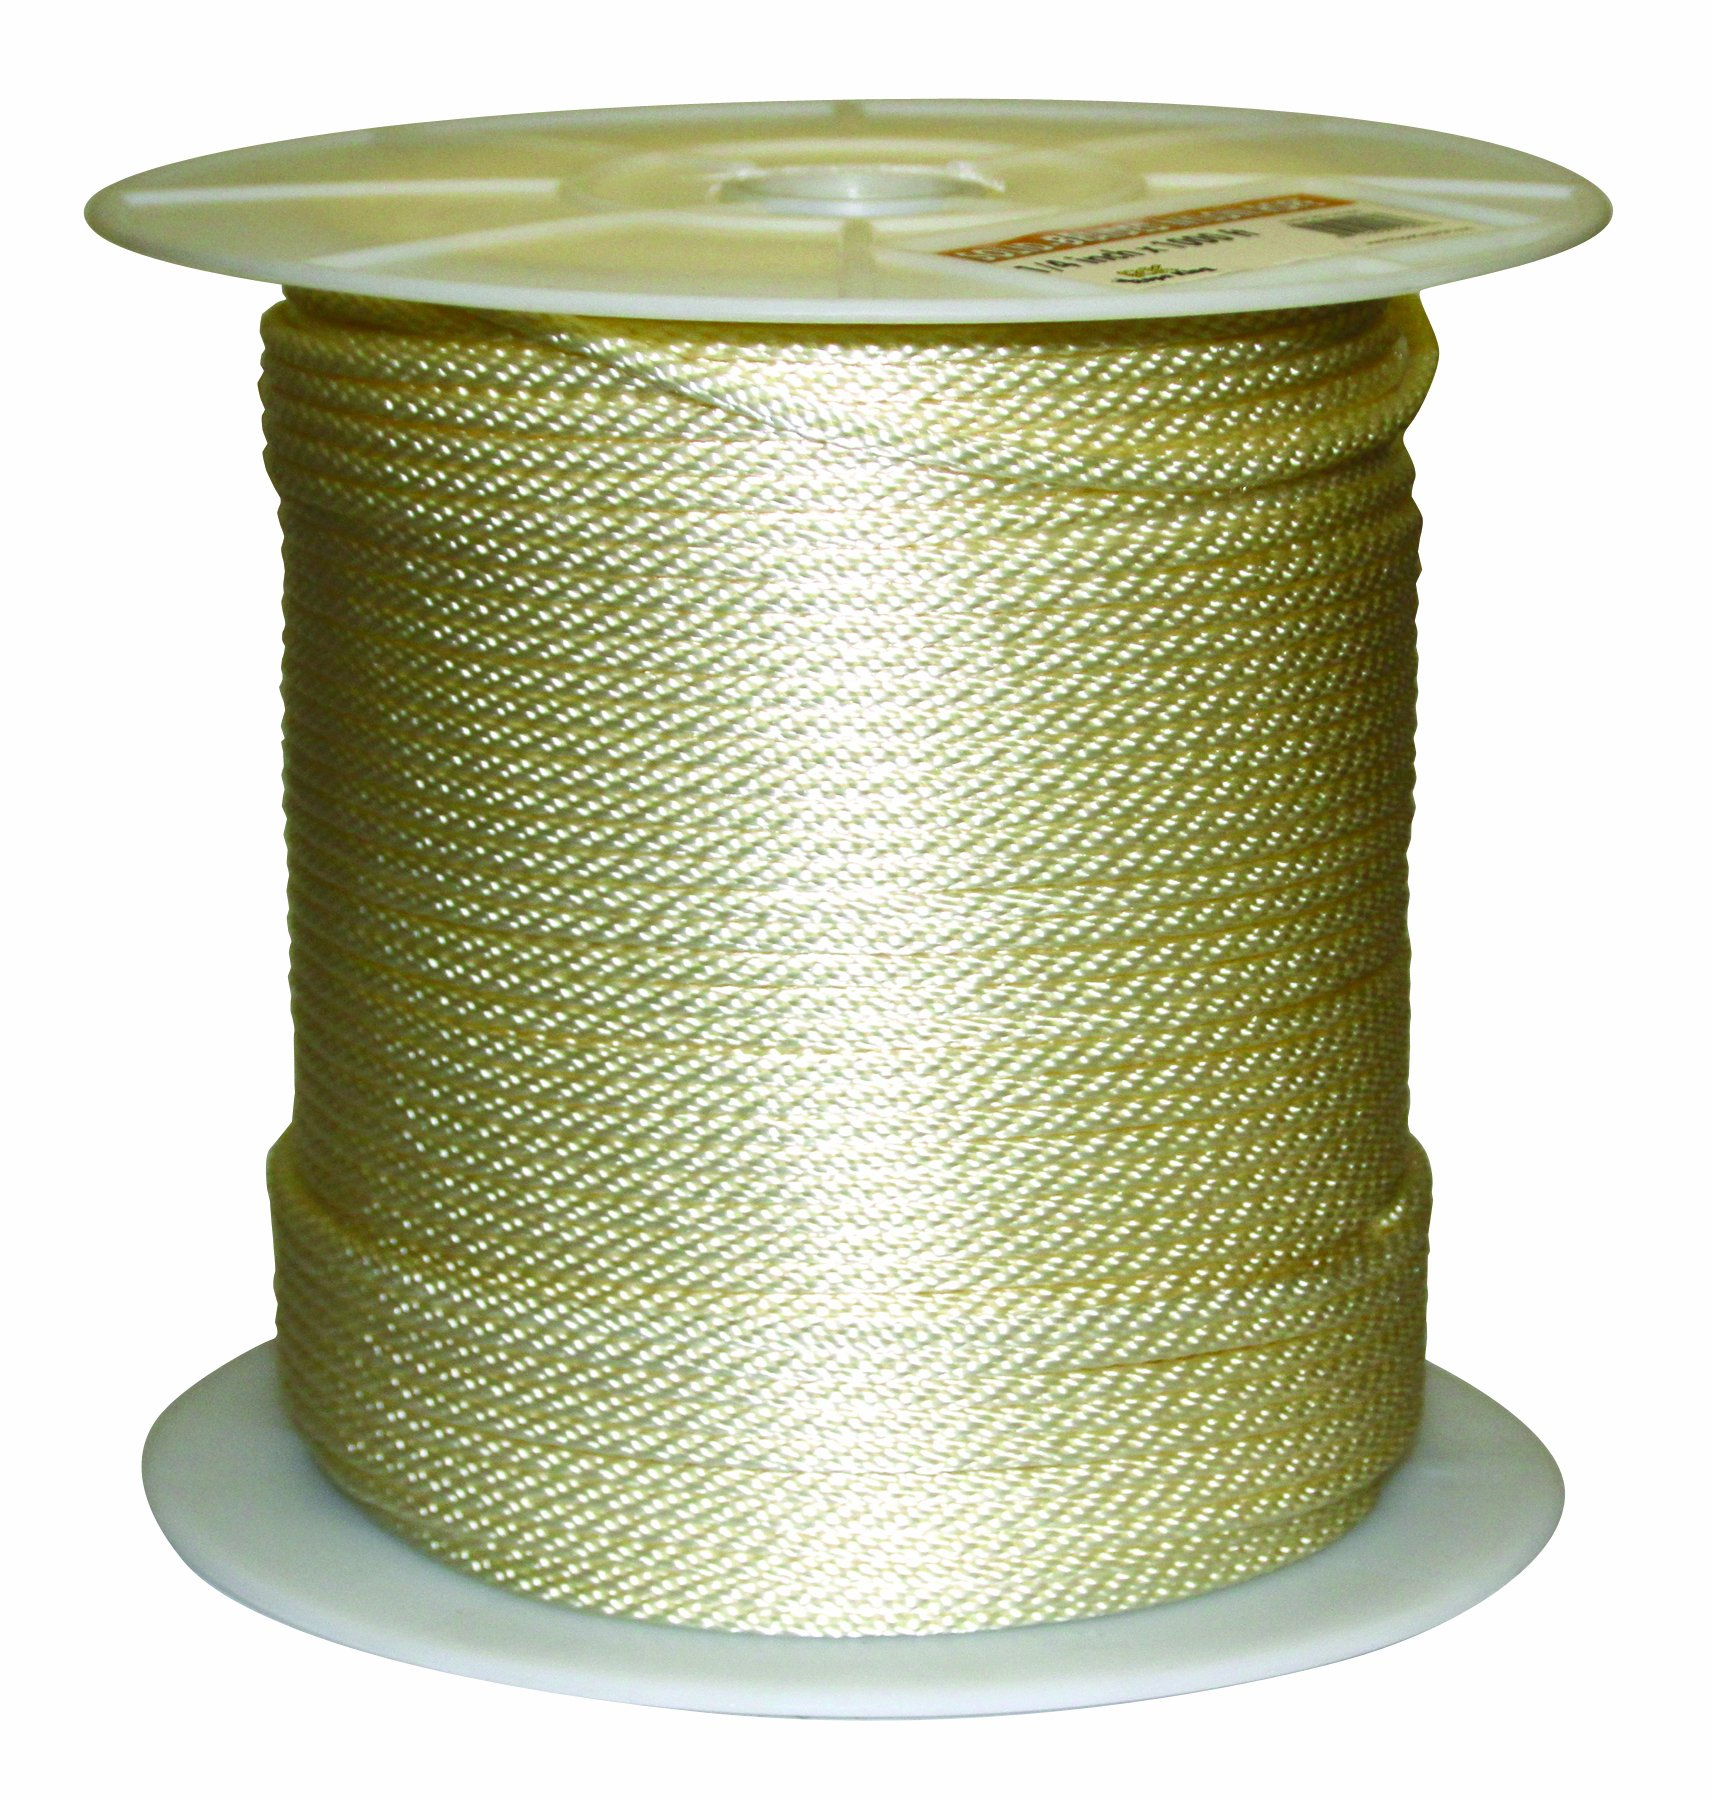 Rope King SBN-141000 Solid Braided Nylon Rope 1/4 inch x 1,000 feet